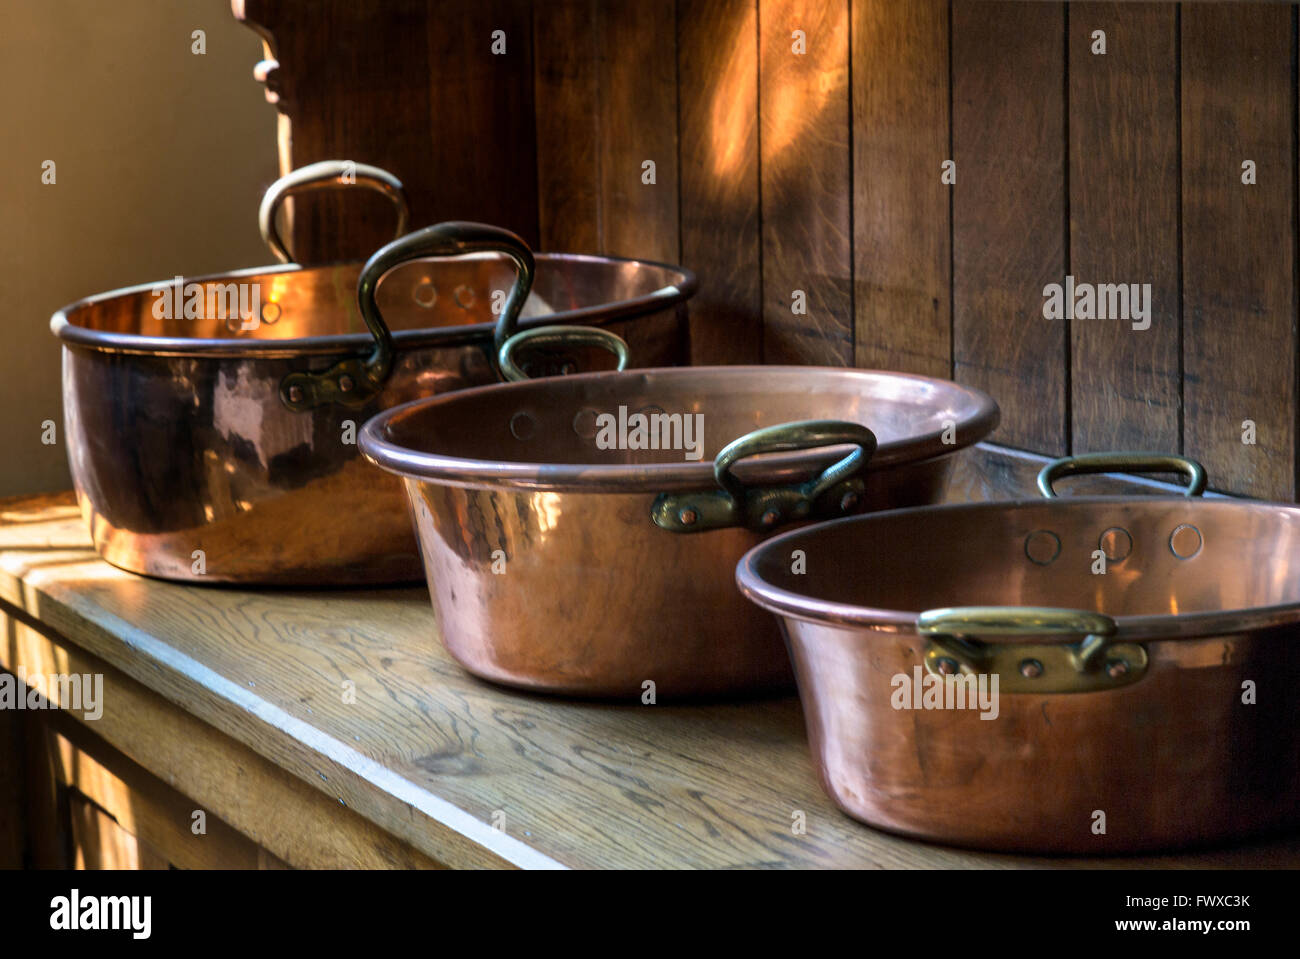 Some of the cooking kitchen utensils  in Penrhyn Castle. - Stock Image